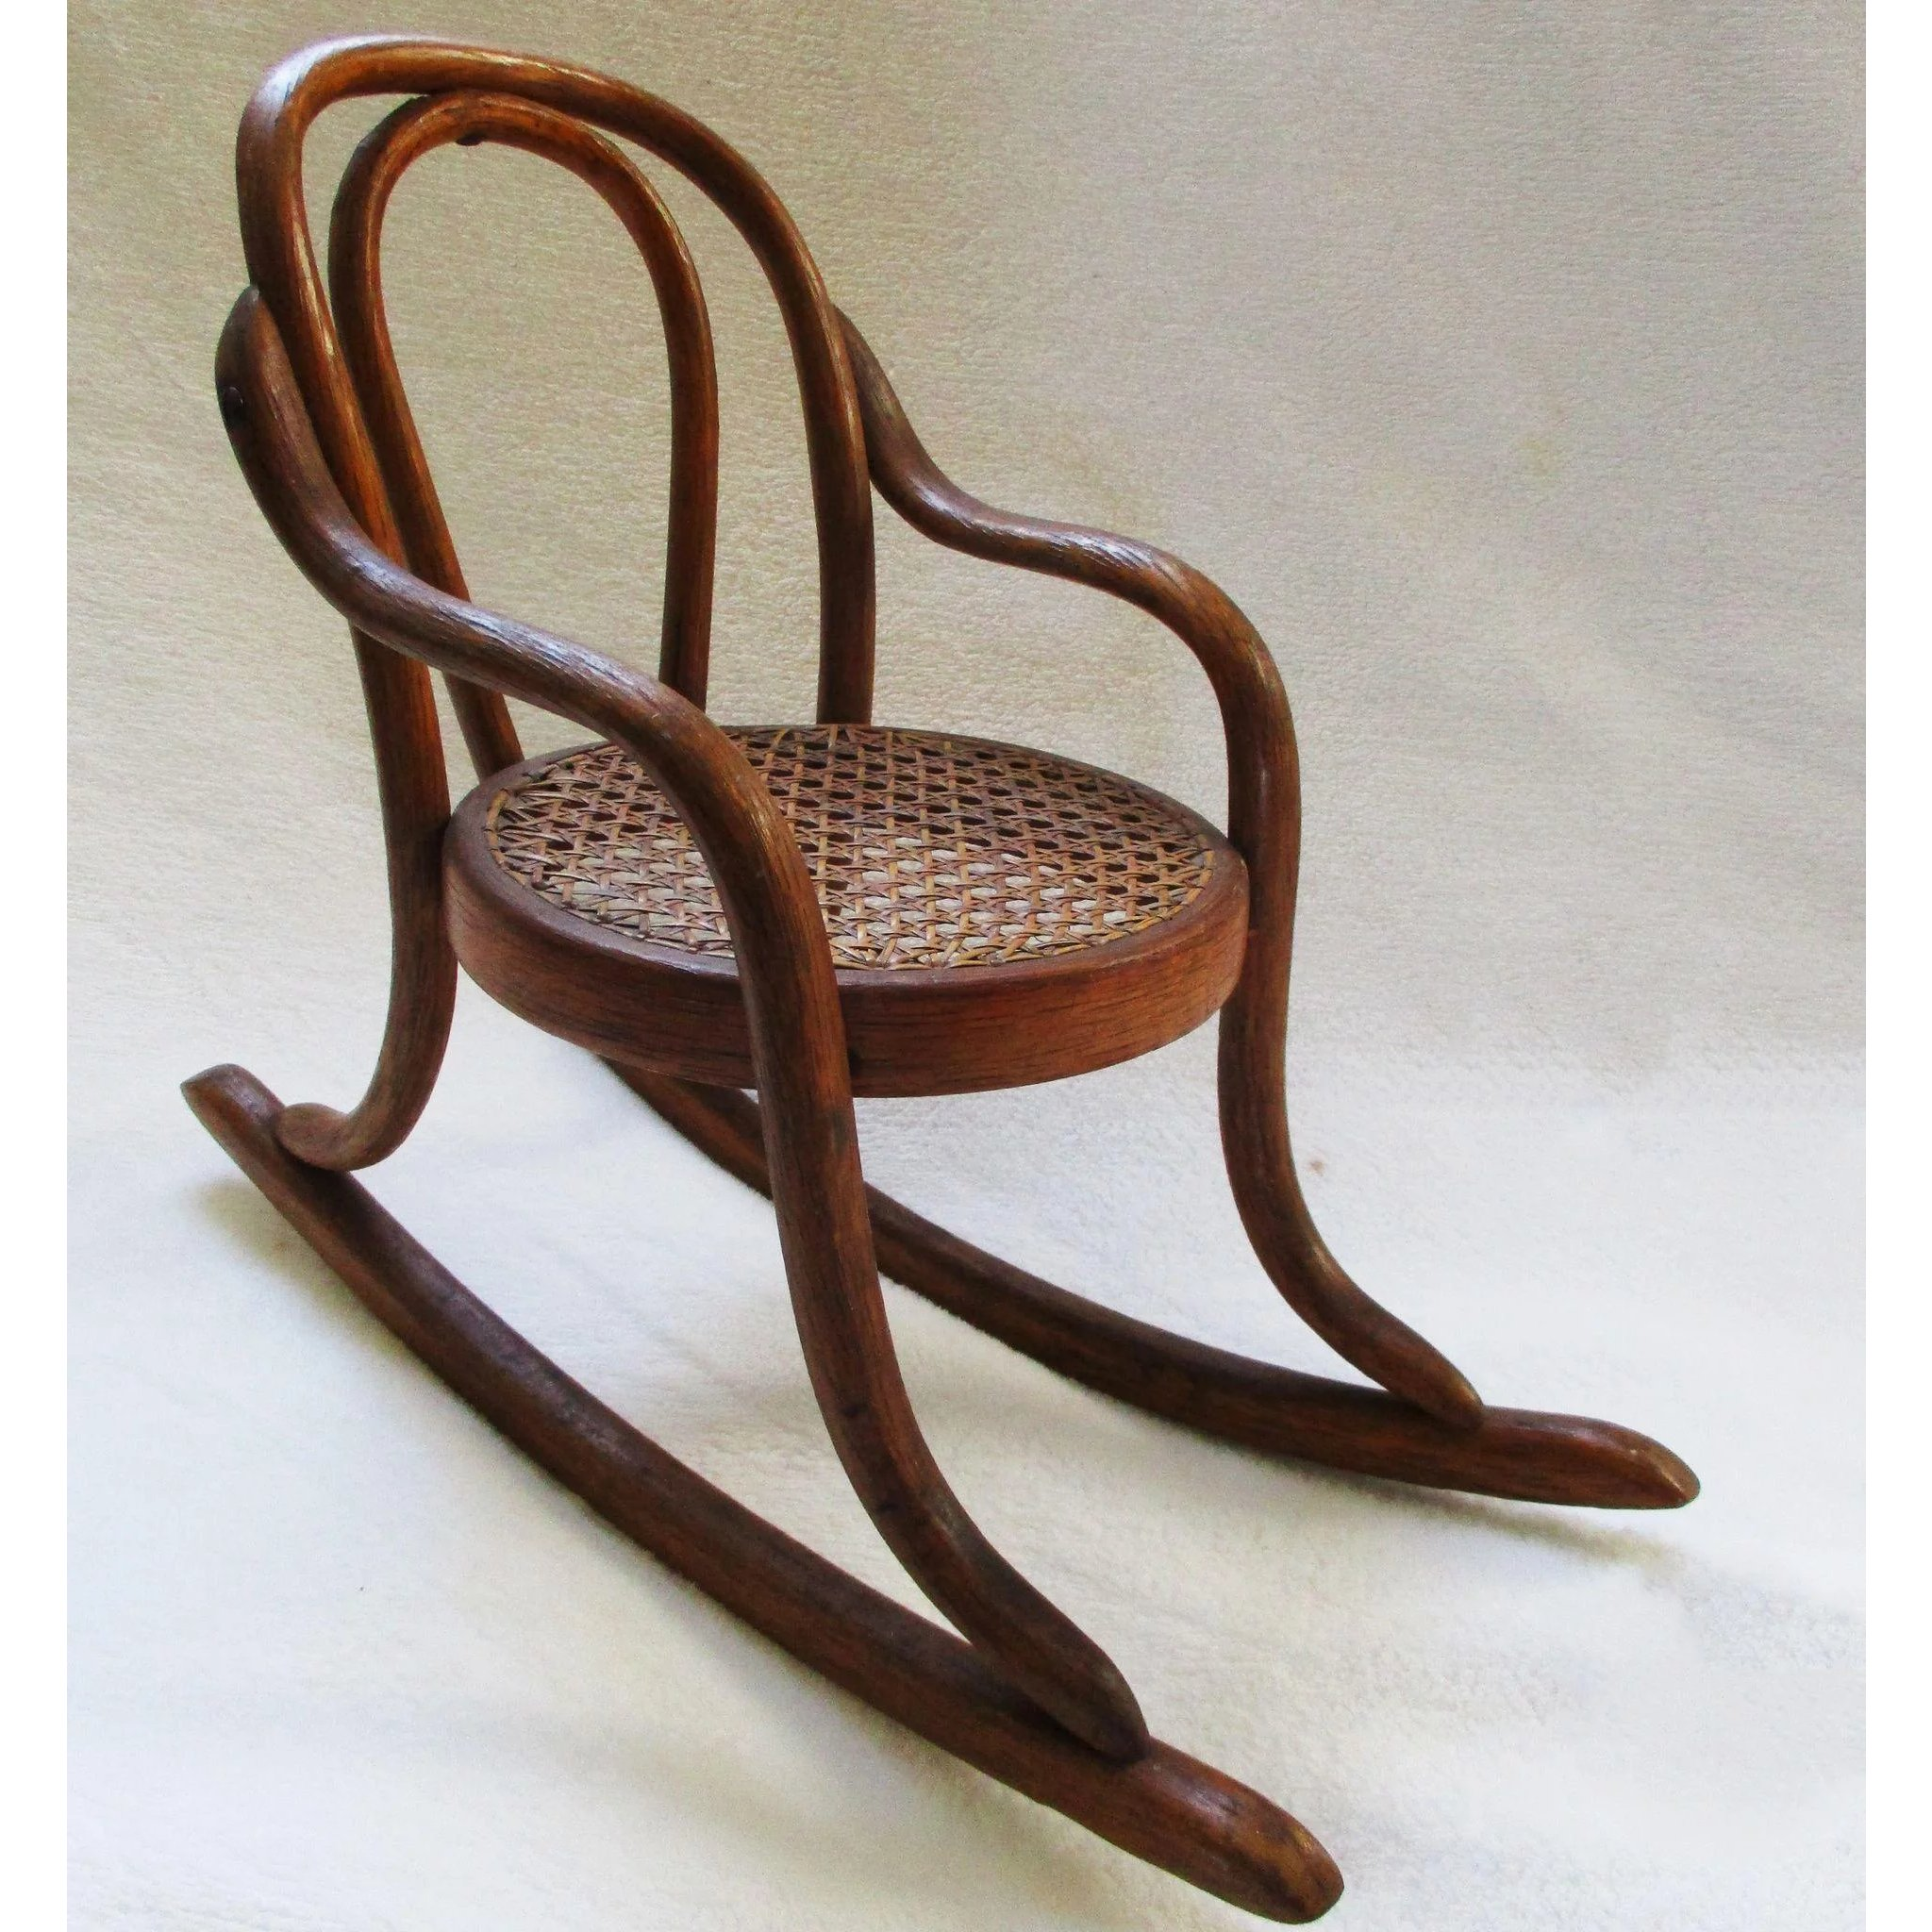 Antique Thonet Bentwood Doll Chair French 19C : Vermont Vintage At The  Round Barn | Ruby Lane